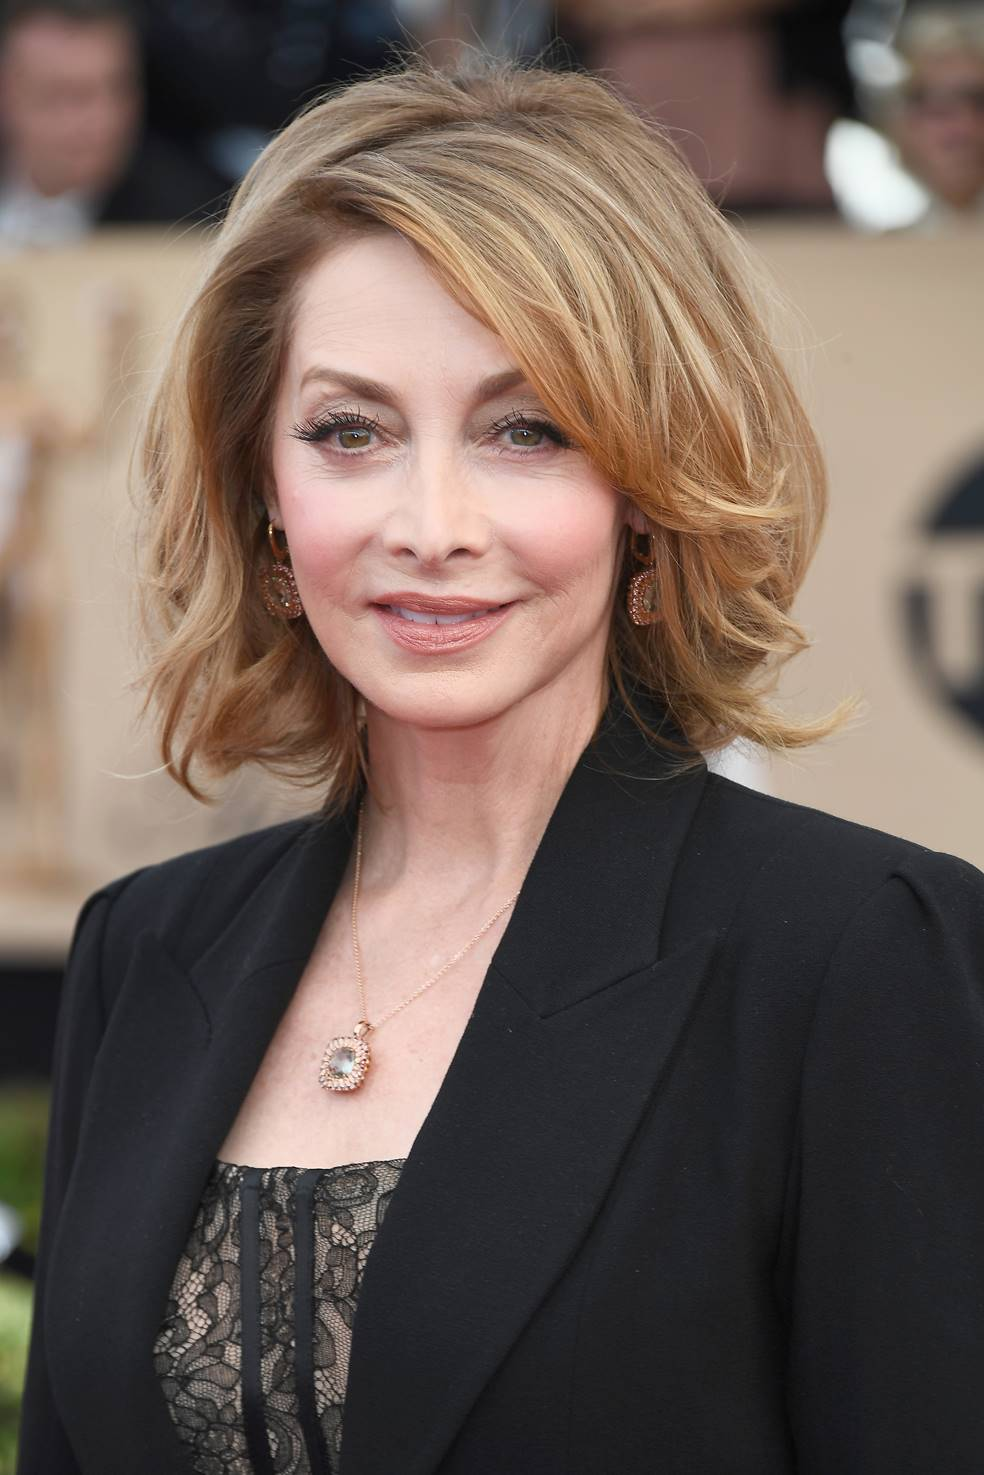 Sharon Lawrence is Heal the Bay's 2017 Annual Awards Gala Honoree